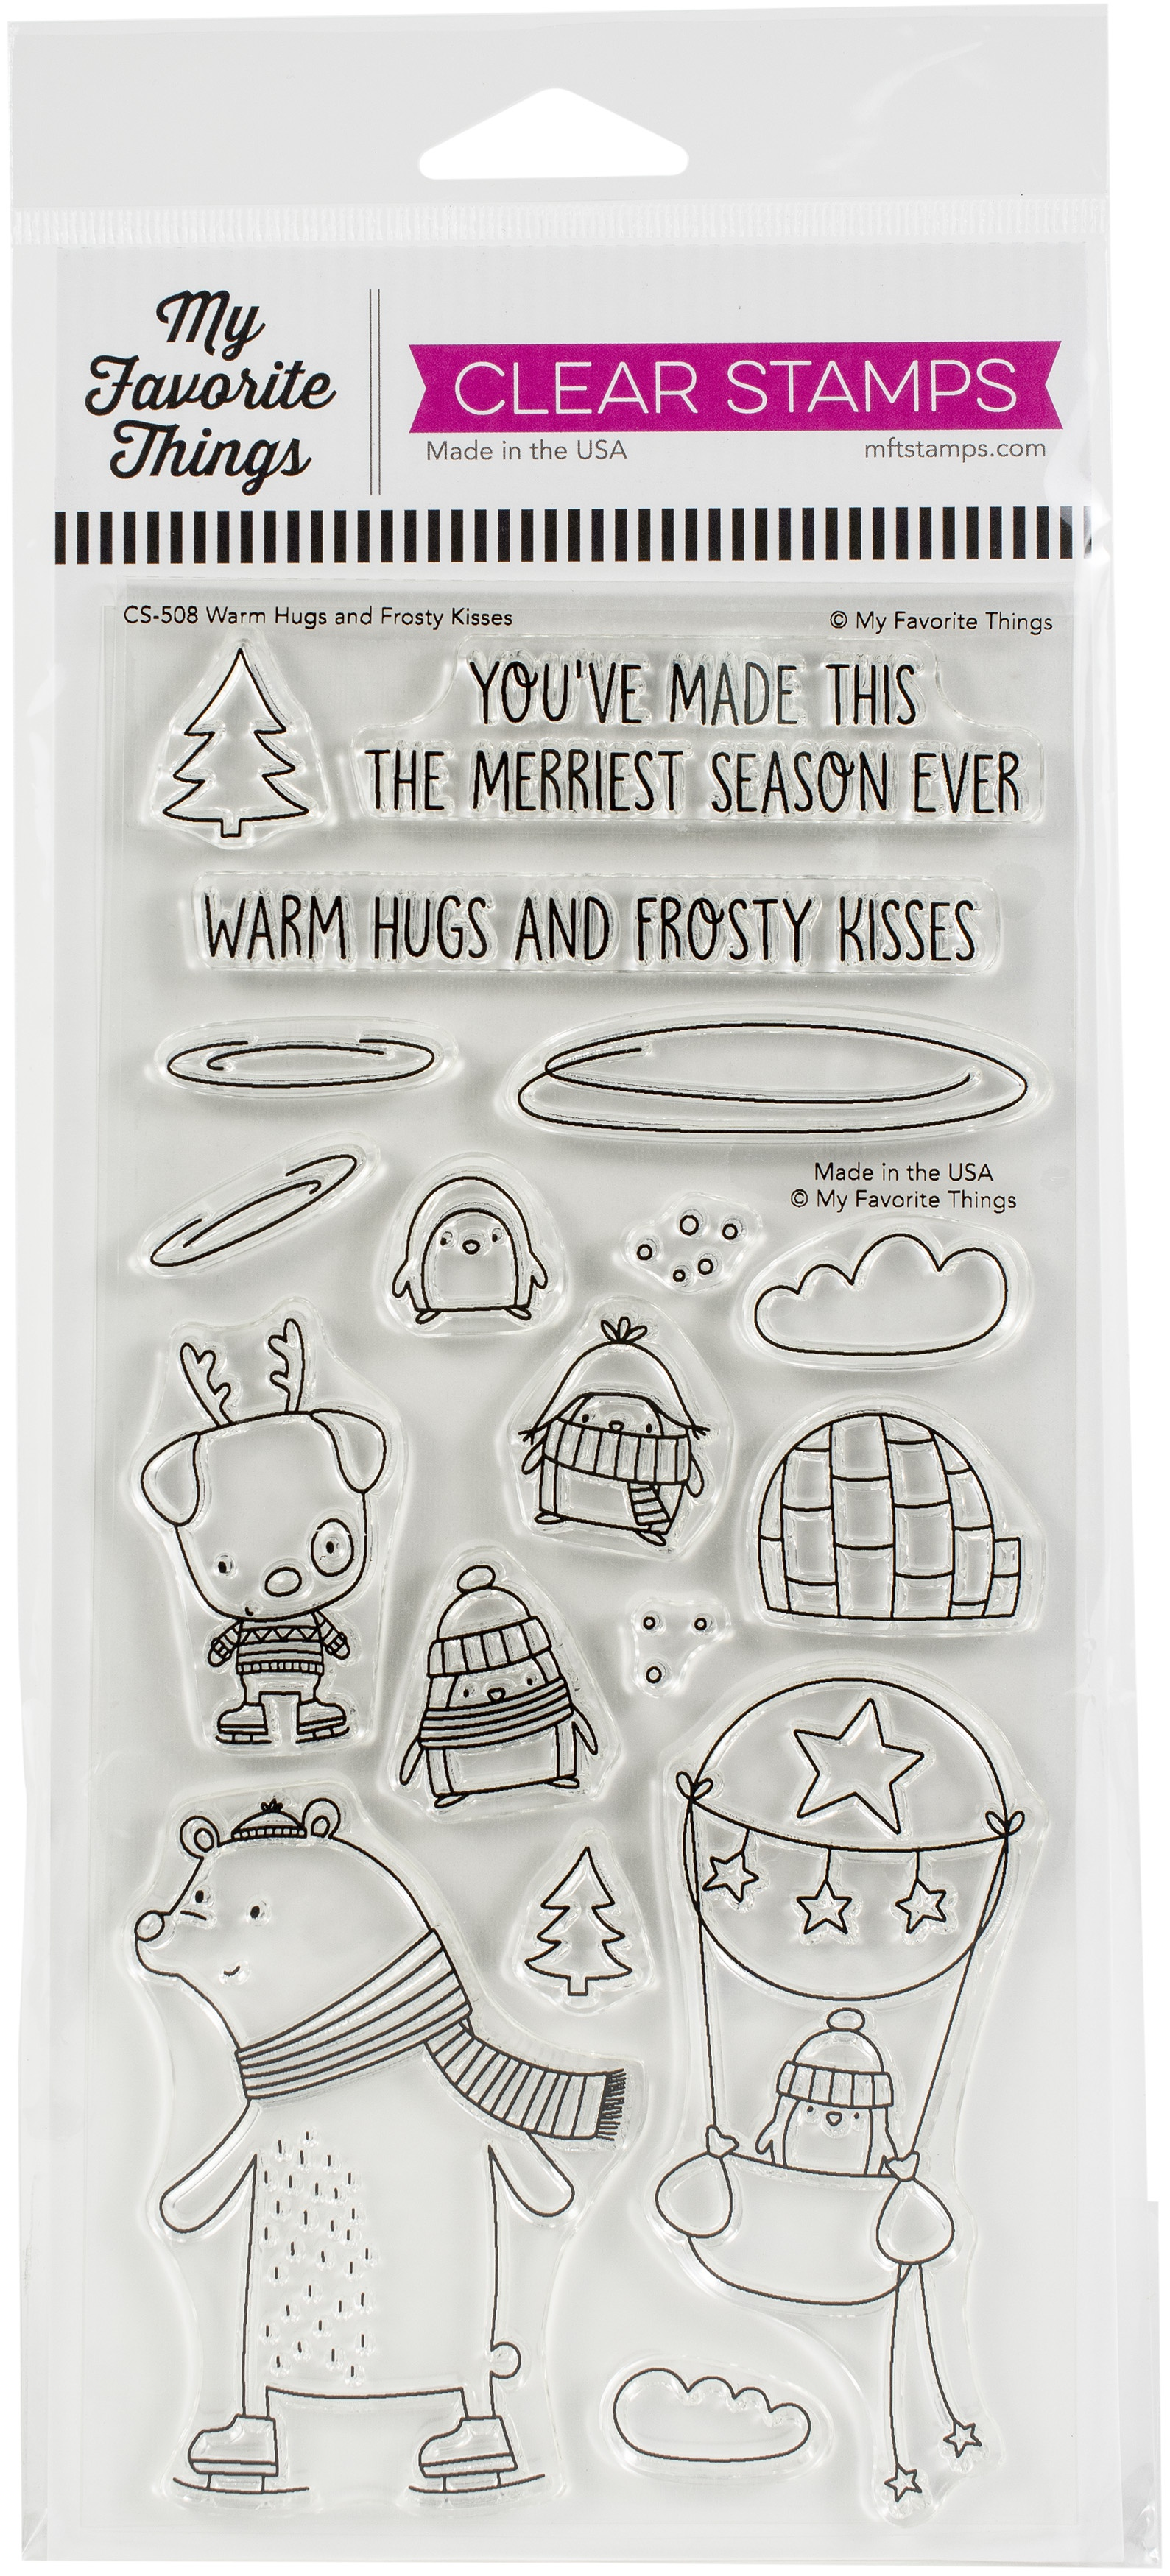 My Favorite Things Clear Stamps 4X8-Warm Hugs and Frosty Kisses